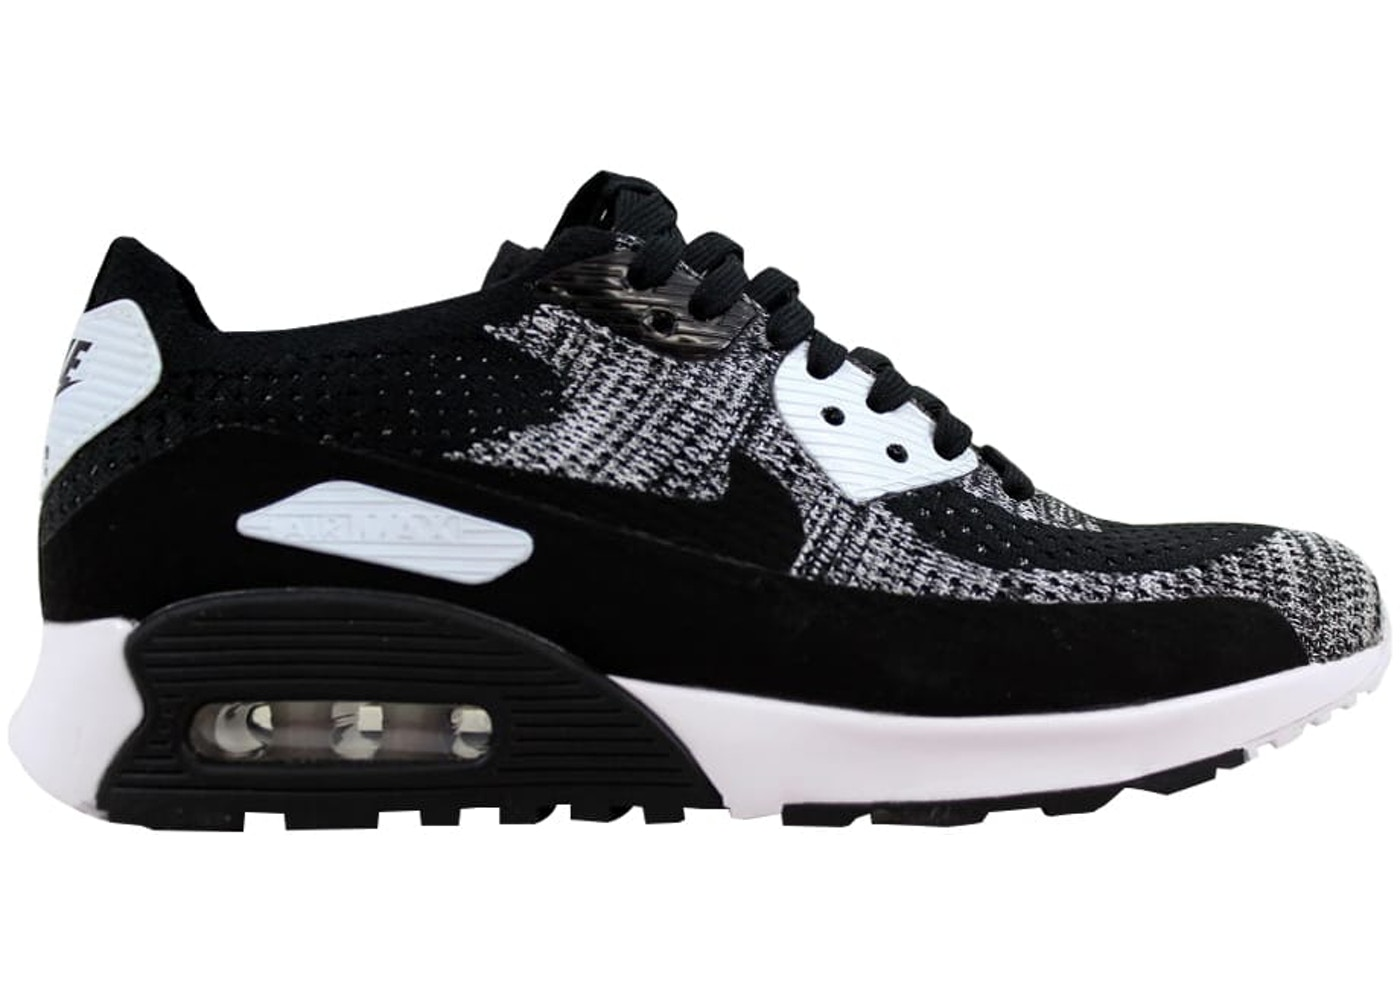 3a43f406a76c Nike Air Max 90 Ultra 2.0 Flyknit Black Black-White-Anthracite (W ...